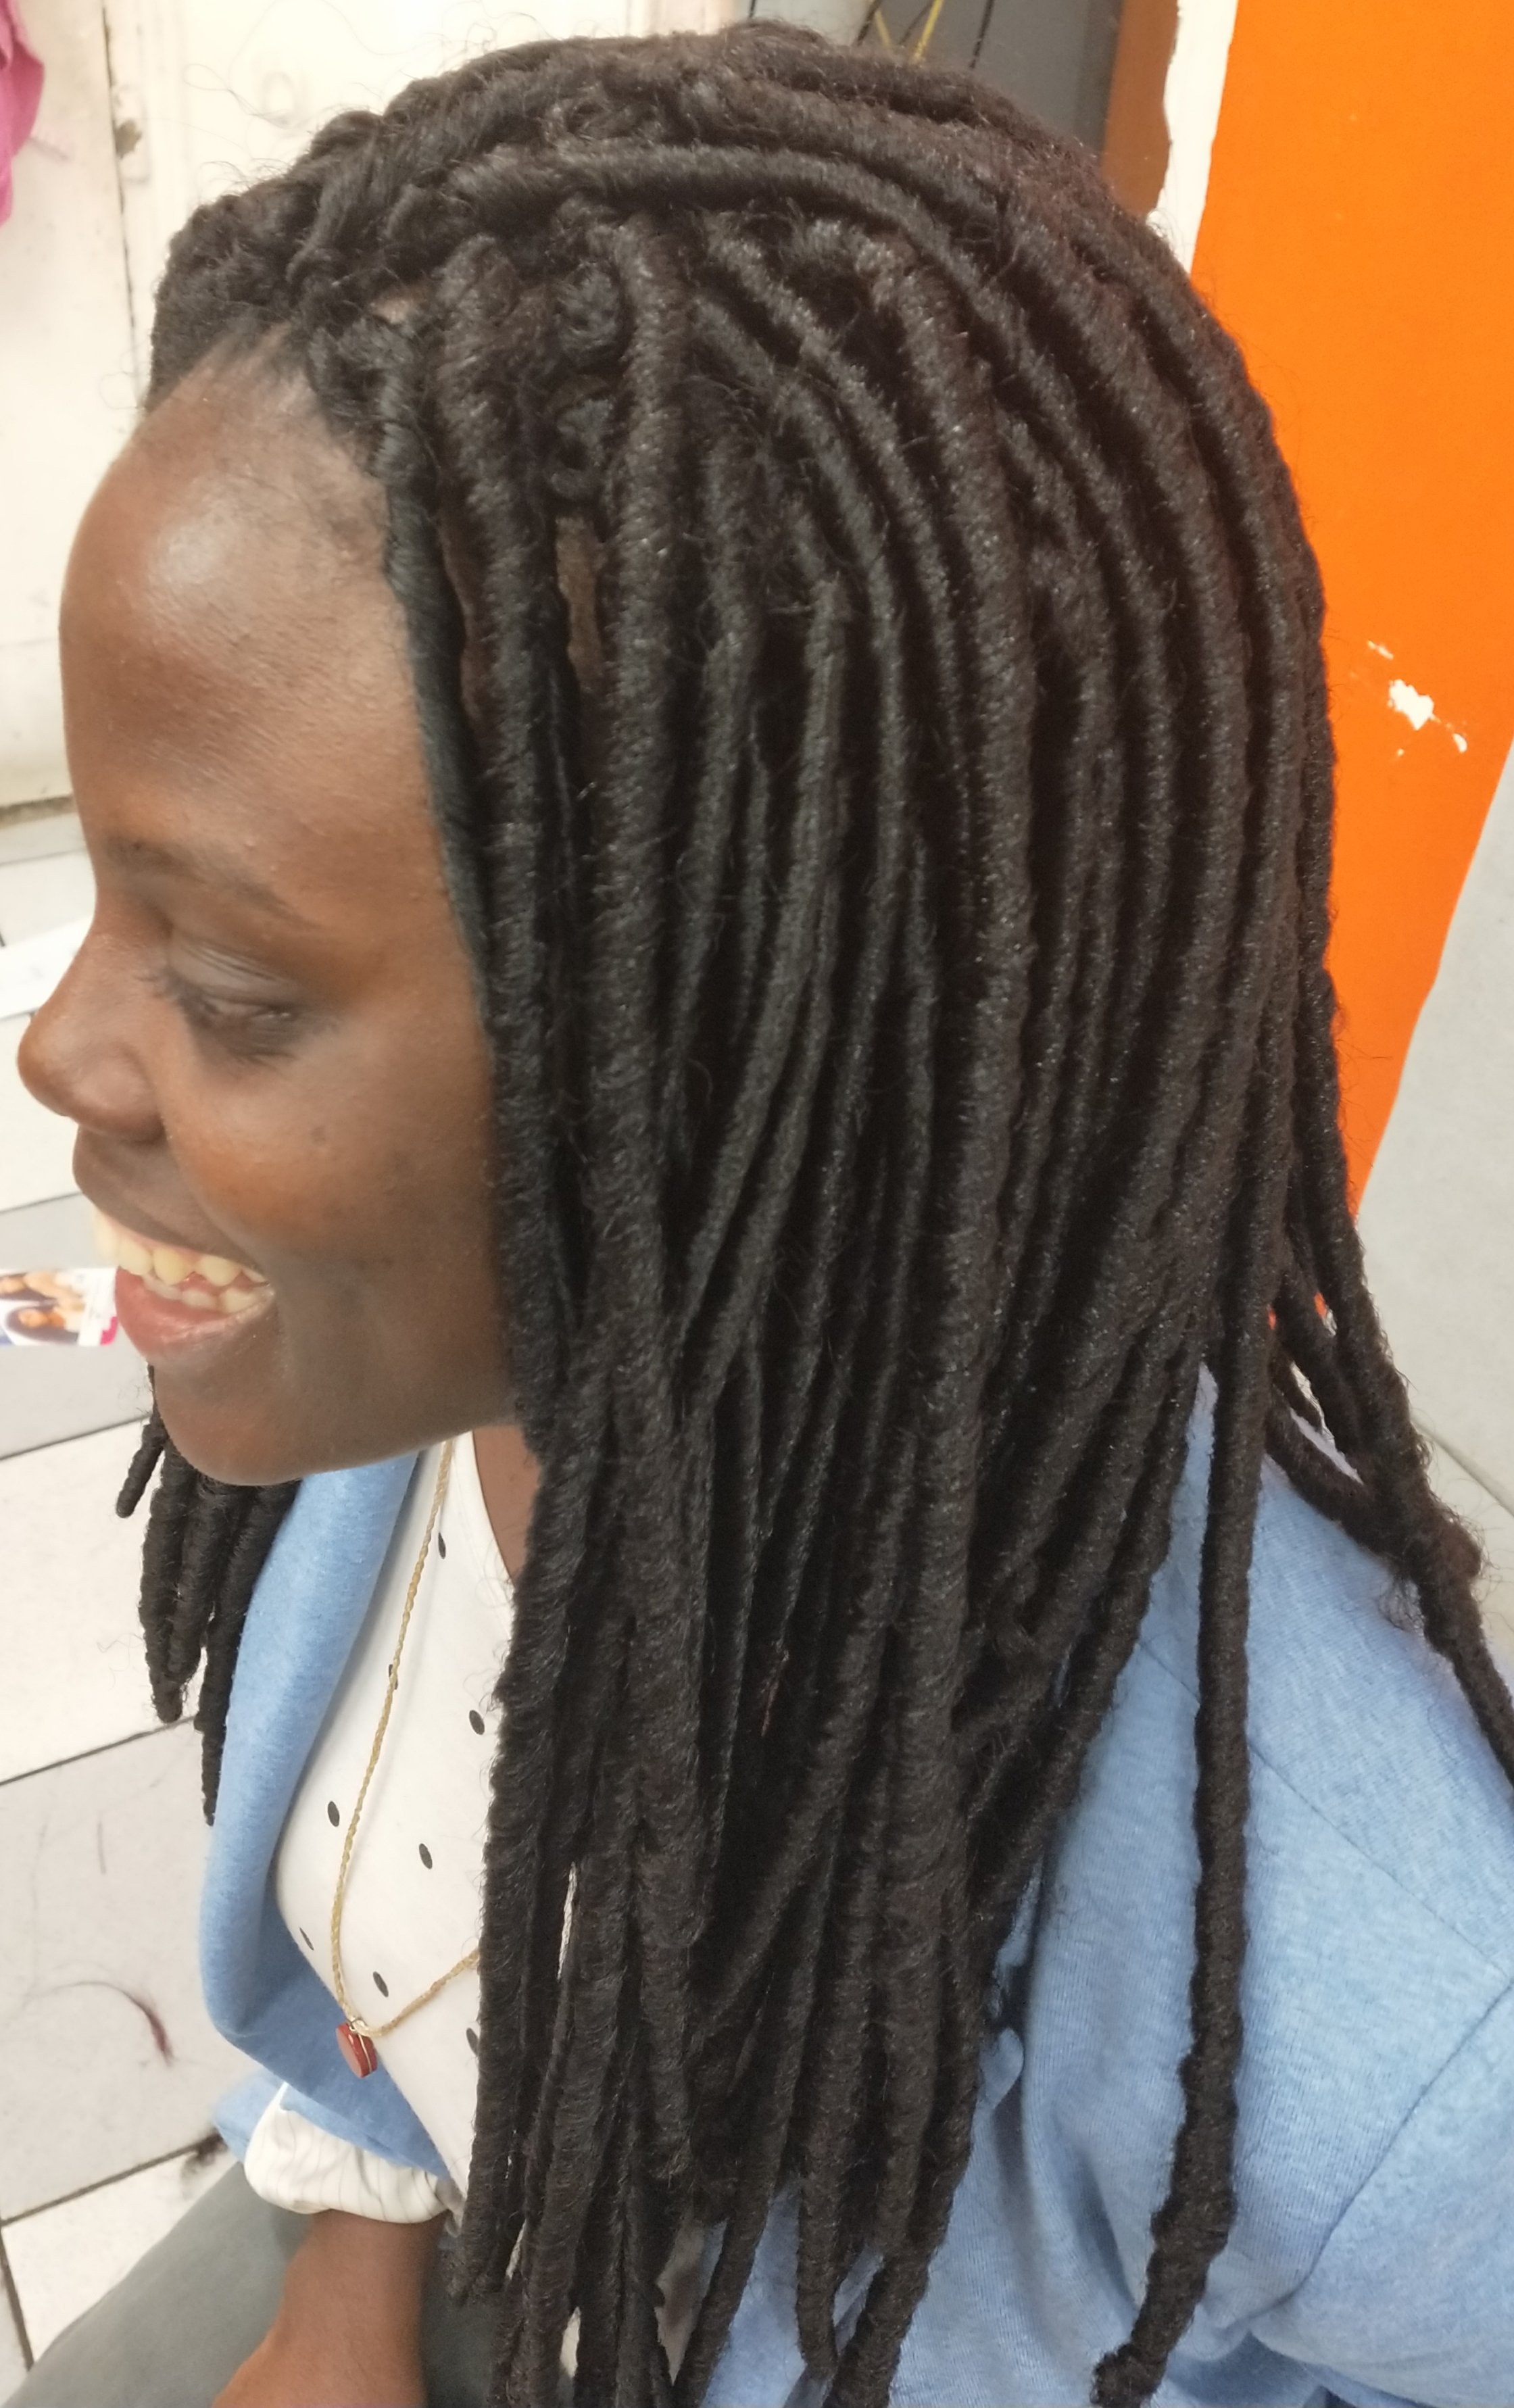 salon de coiffure afro tresse tresses box braids crochet braids vanilles tissages paris 75 77 78 91 92 93 94 95 SLXPBKVX